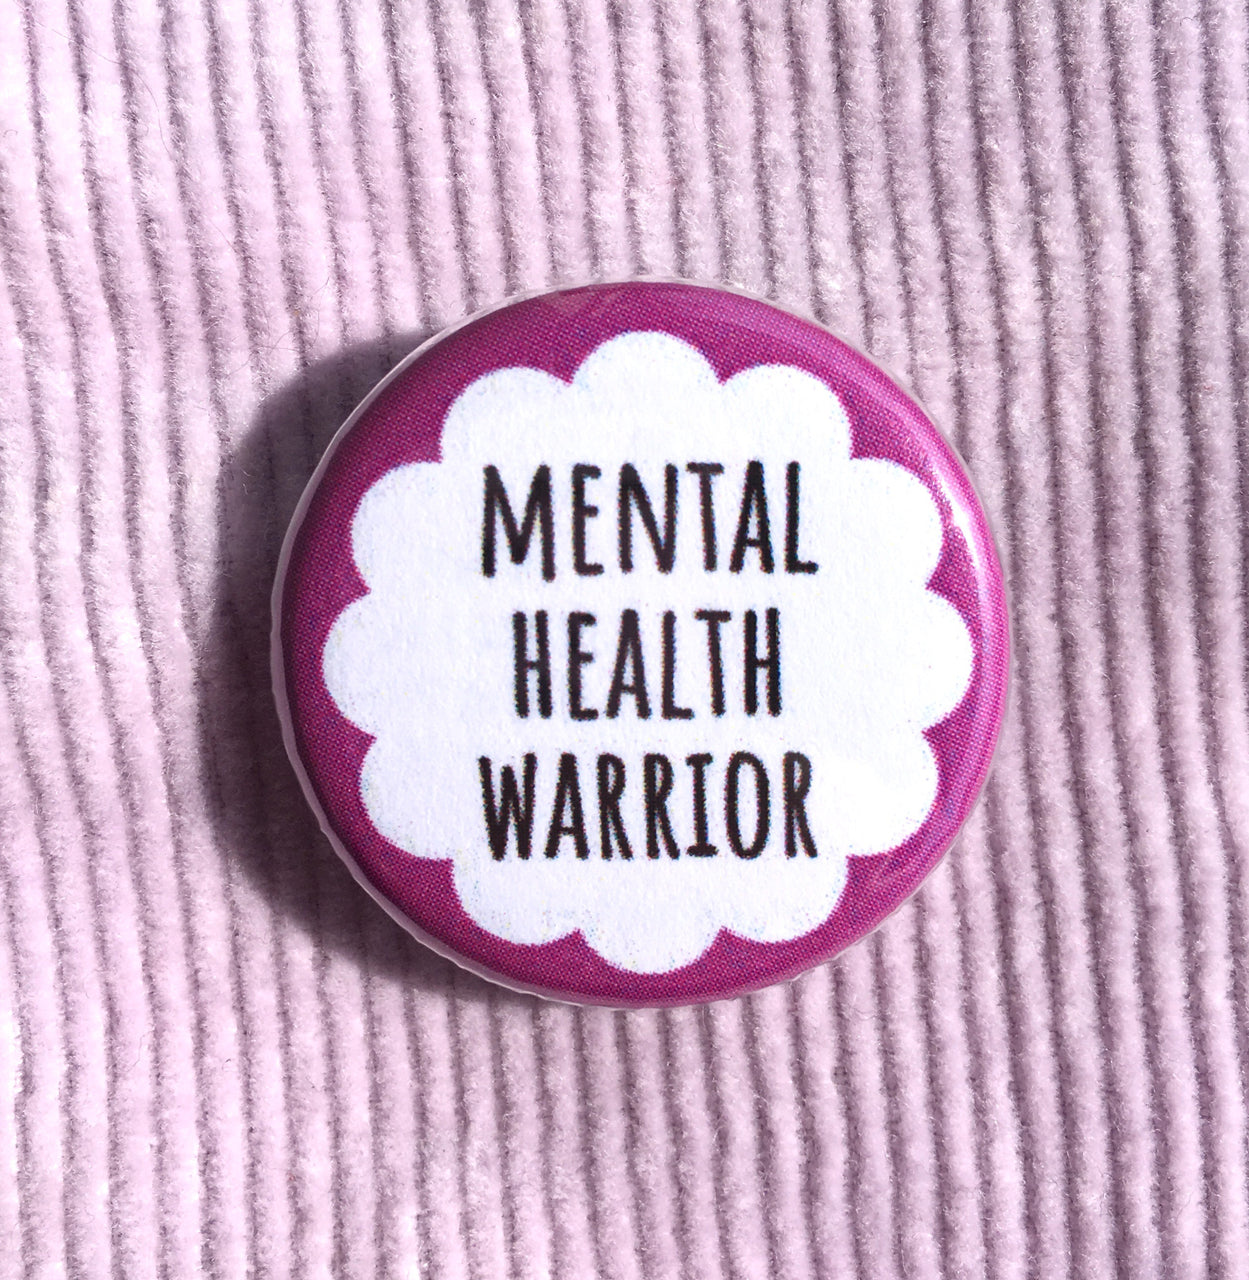 Mental health warrior - Radical Buttons